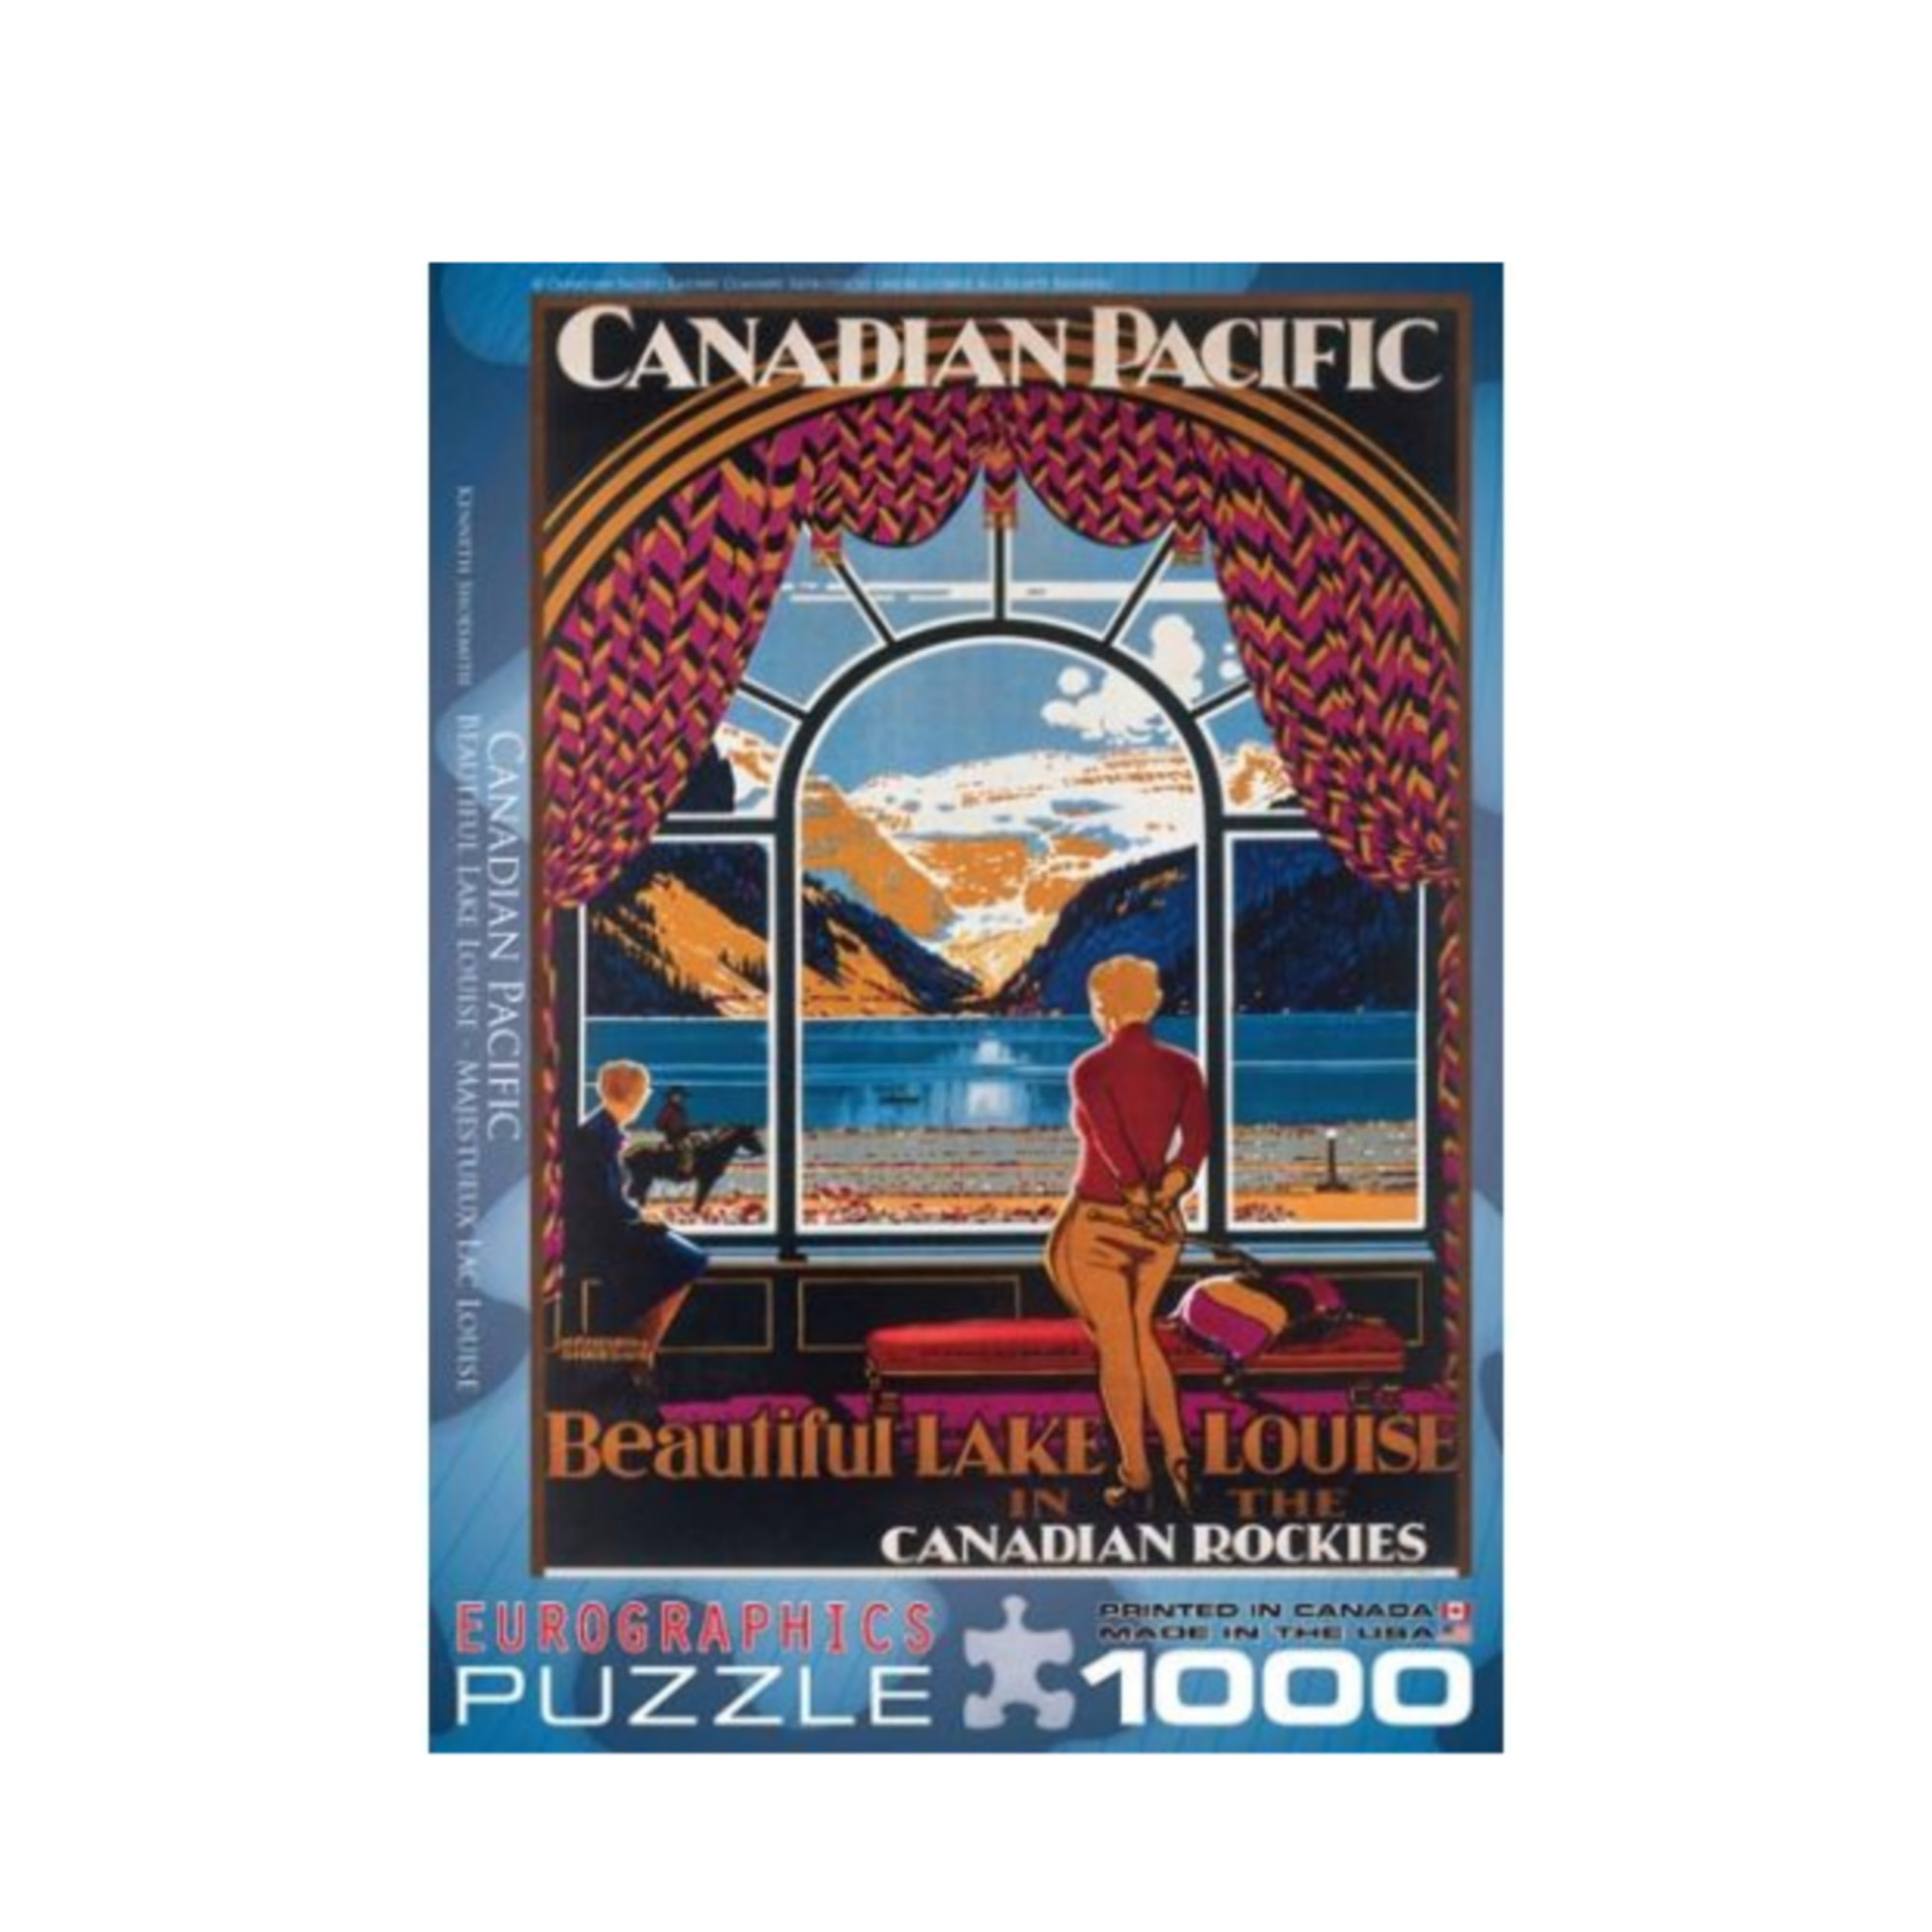 Eurographics Puzzle 1000: Beautiful Lake Louise by Kenneth Shoesmith